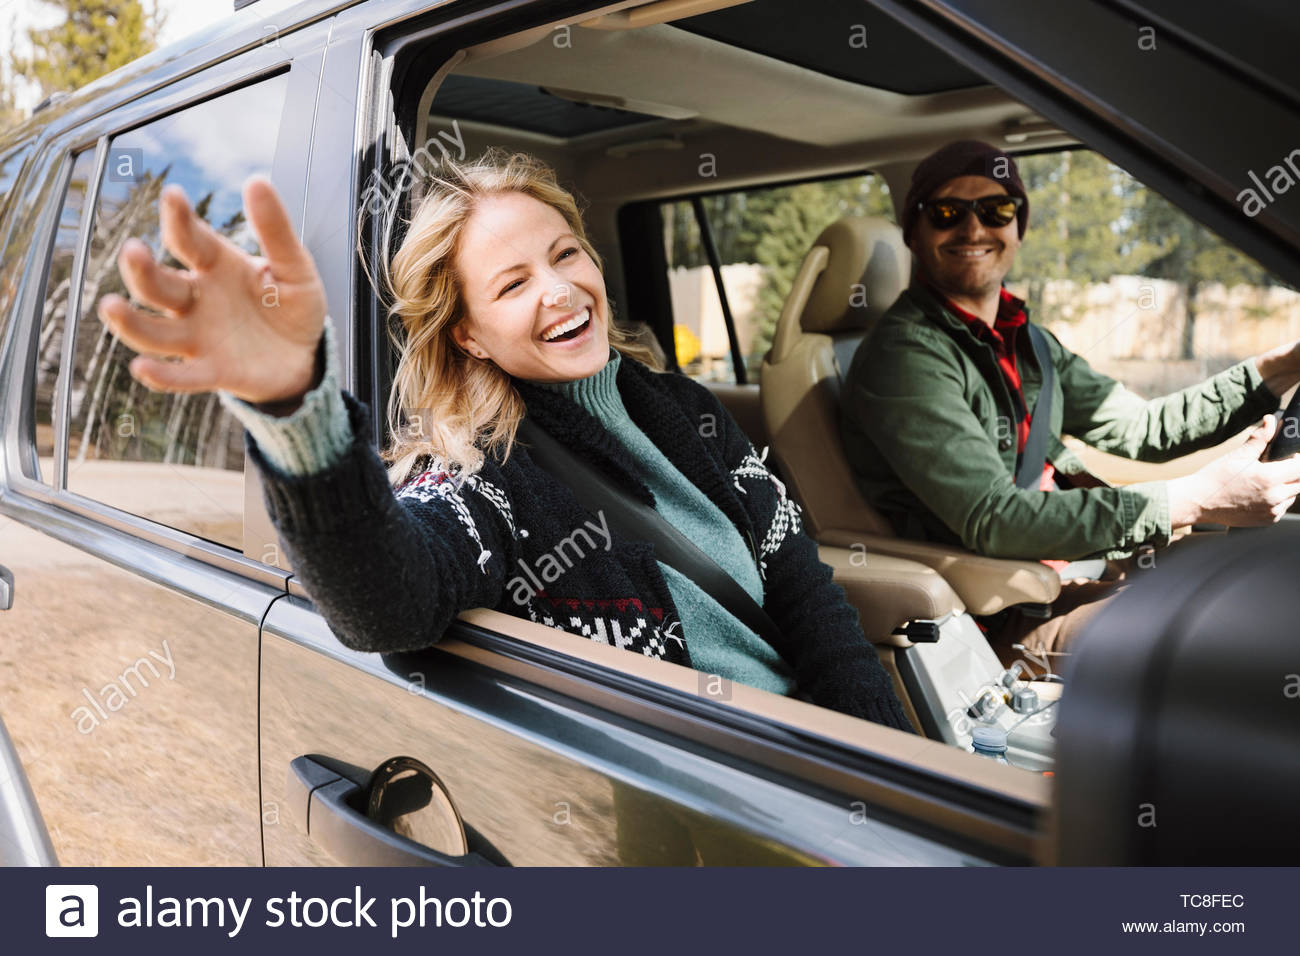 Carefree woman enjoying road trip in SUV Photo Stock